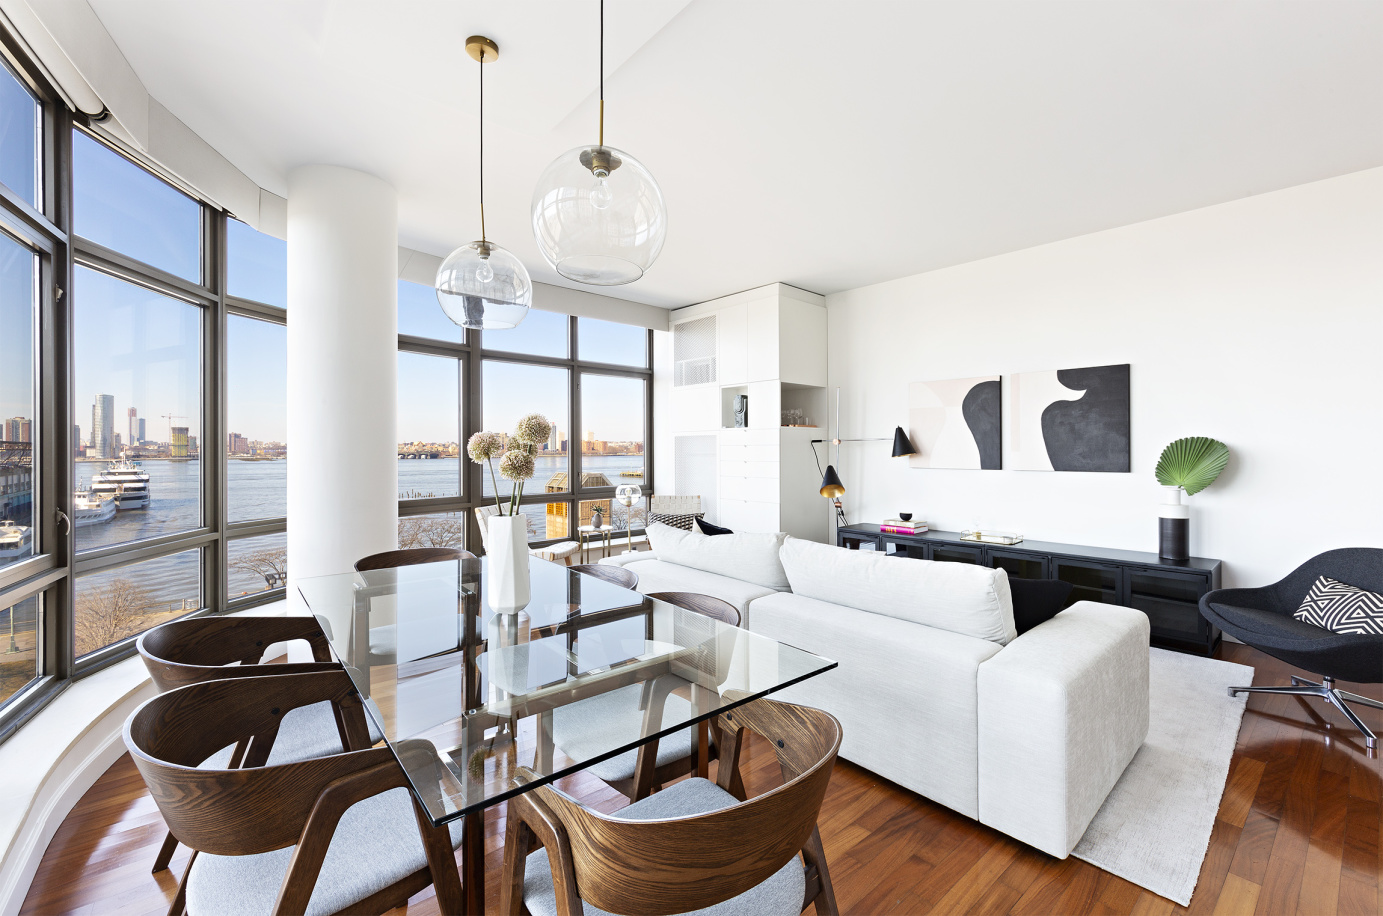 West Village SunsetsSavor direct Western views of the Hudson River and park from the living room of this elegant, oversized condo designed by Andres Escobar.  Each of the bedrooms faces south and also enjoys full water views.  Newly renovated and in mint condition, this condo is an outstanding value.  At $2,210/foot, the asking price is nearly $300/foot less than the building's average asking price, even though 5CW faces the river!Relax and enjoy the river views as you cook in your windowed gourmet kitchen with exquisite finishes and luxury brand appliances.  The two-and-a-half marble baths have custom vanities and Watermark fixtures.  The apartment features soaring ceilings, professionally outfitted closets and elegant built-ins within every room.1 Morton Square is a full-service, white glove building featuring 24-hour doorman and concierge, live-in superintendent, private gated entrance, 3,000' state-of-the-art gym, children's play room, bike room, storage room, laundry room, valet, landscaped courtyard and parking garage.